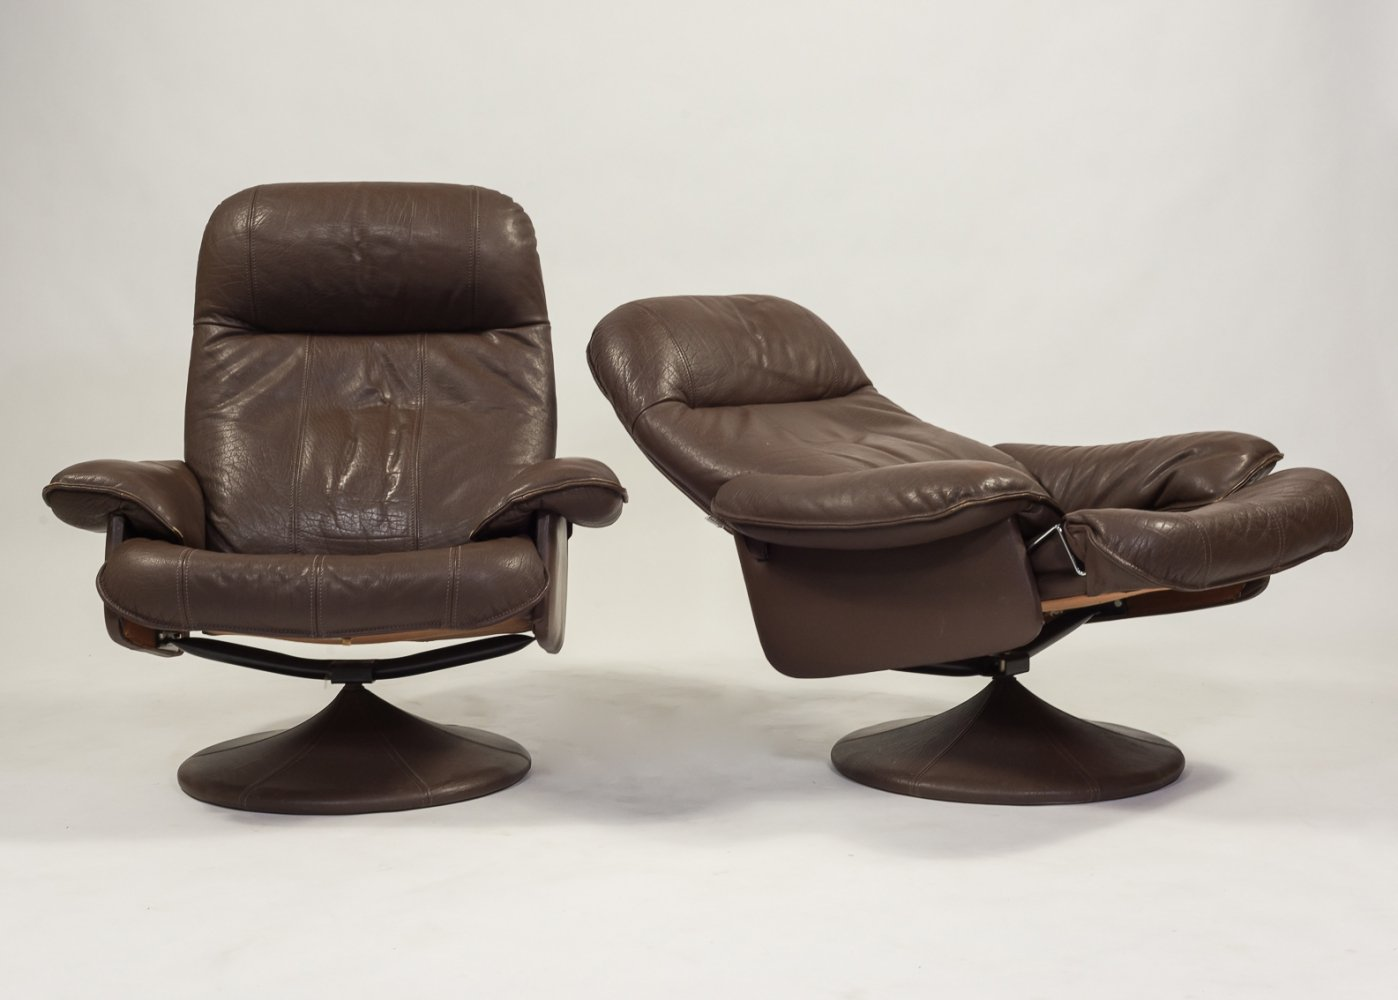 Set of 2 vintage Thams lounge armchairs, 1970s